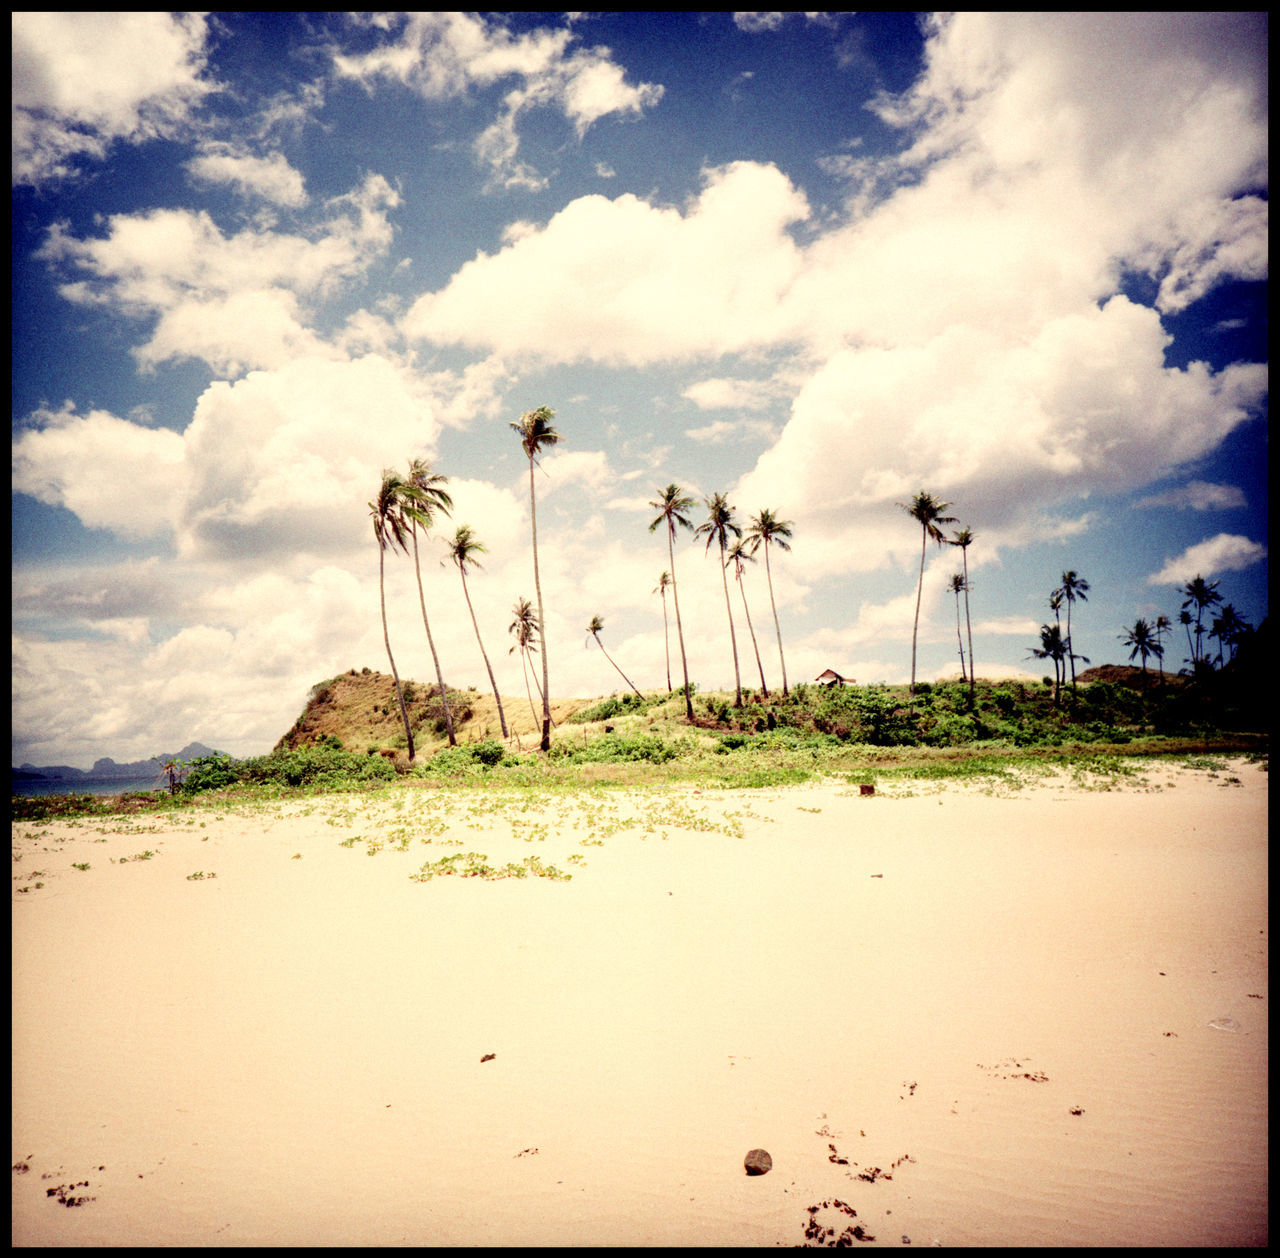 The Twin Beach of Nacpan, el Nido Analogue Photography Beach And Sky Beach Life Clouds Coconuts Dream Beach El Nido Lomography Lonely Coconut Medium Format Nacpan Nature No People Ocean Outdoors Palawan Paradise Sand Summer The Great Outdoors - 2017 EyeEm Awards Toothpic Palms Travel Treasure Island Trip Xpro